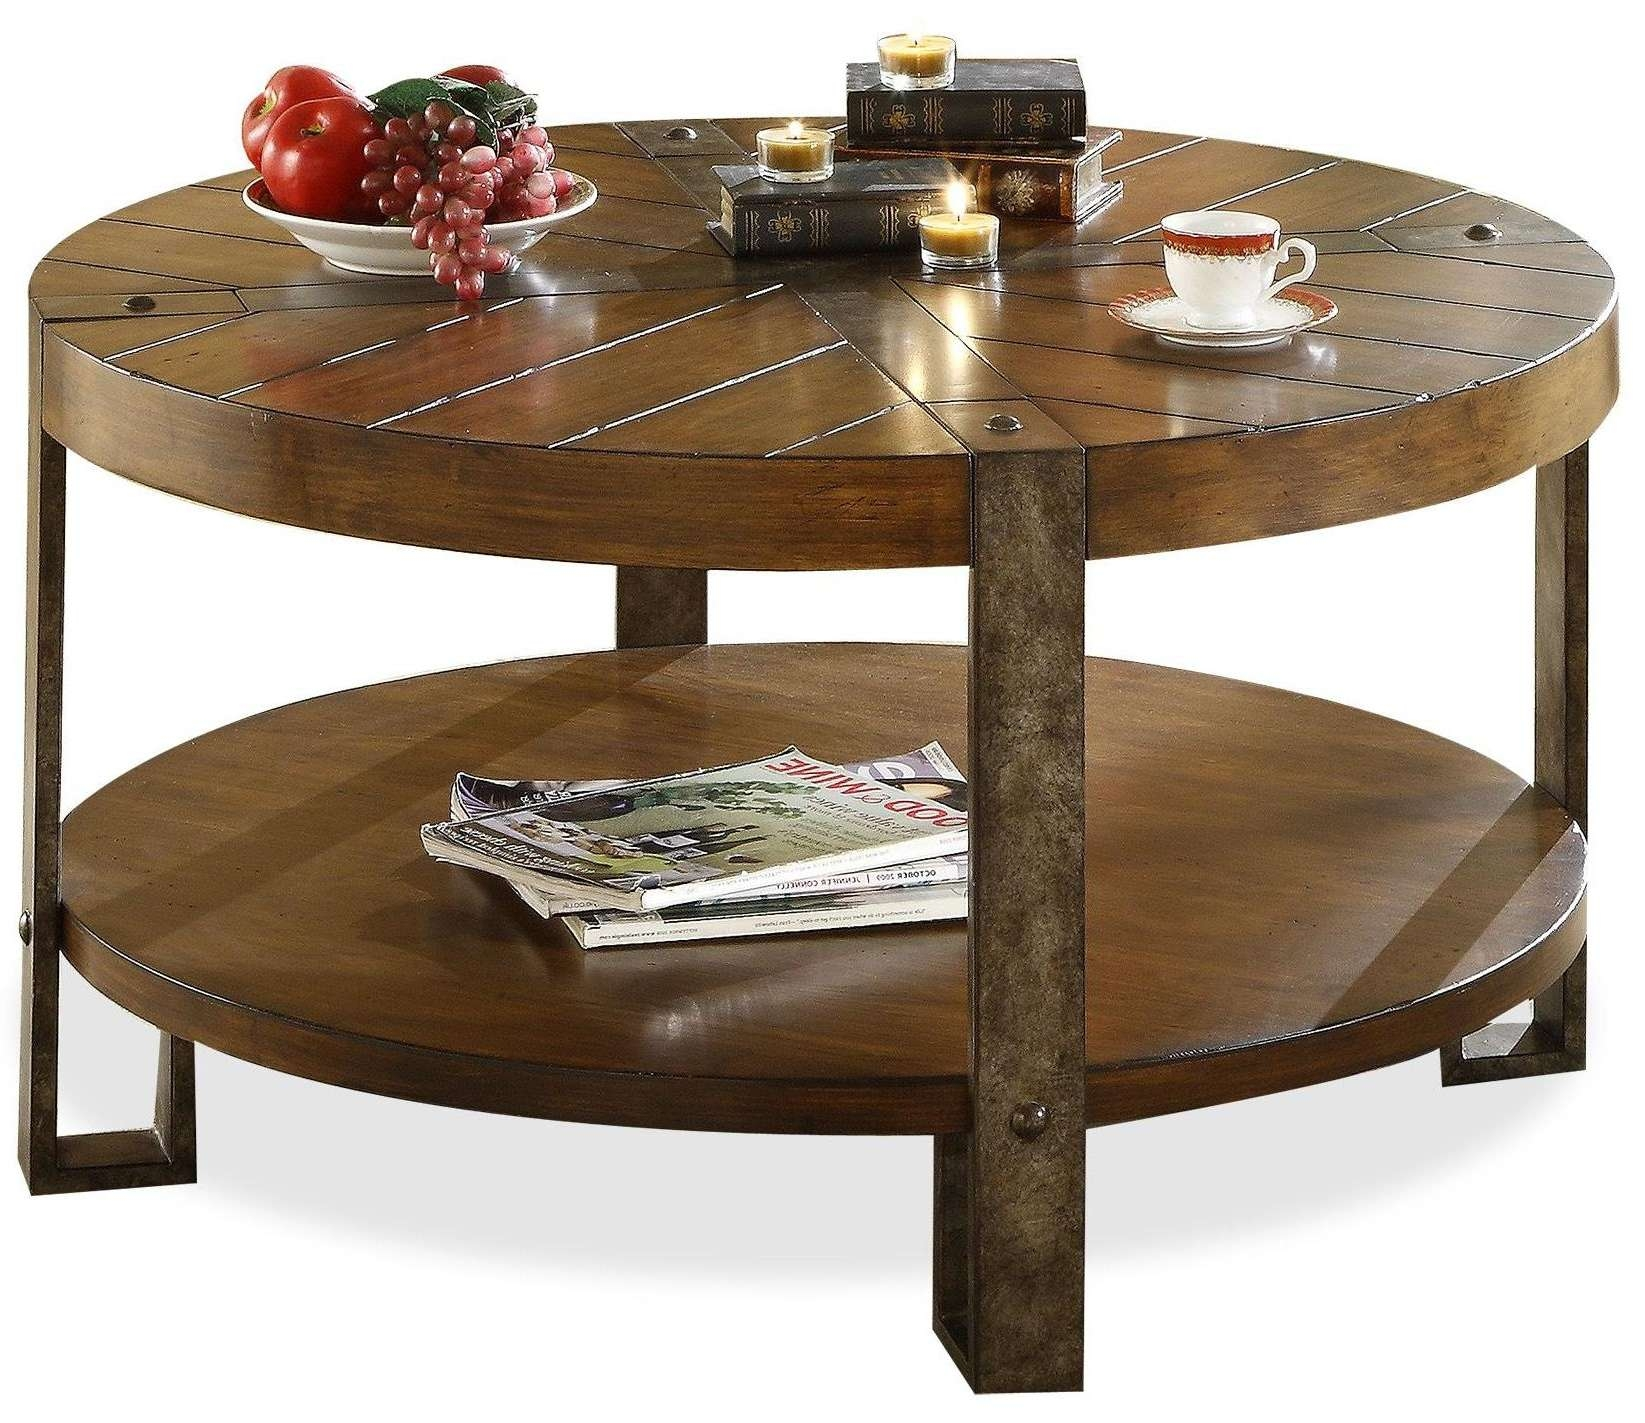 Coffee Tables : Industrial Round Coffee Table Large Square Modern Inside Best And Newest Industrial Round Coffee Tables (View 4 of 20)